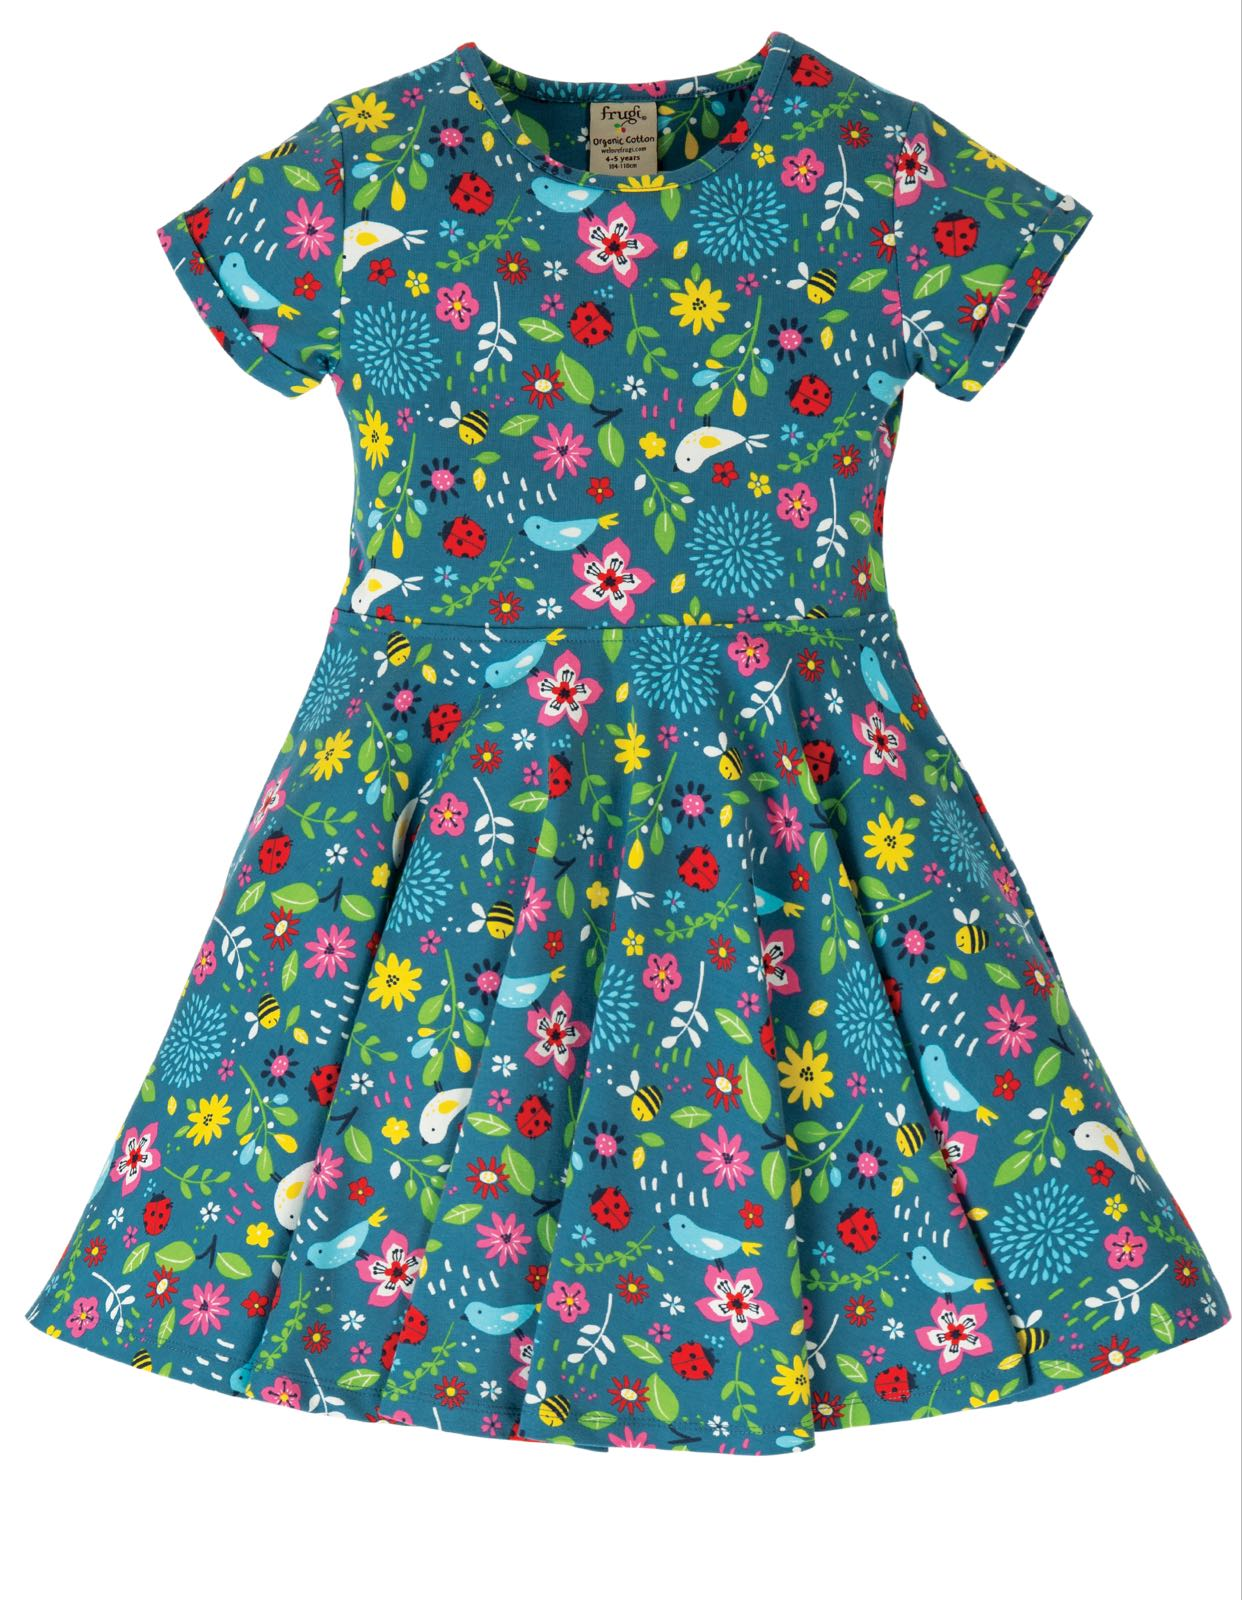 Frugi Spring Skater Dress, Garden Friends